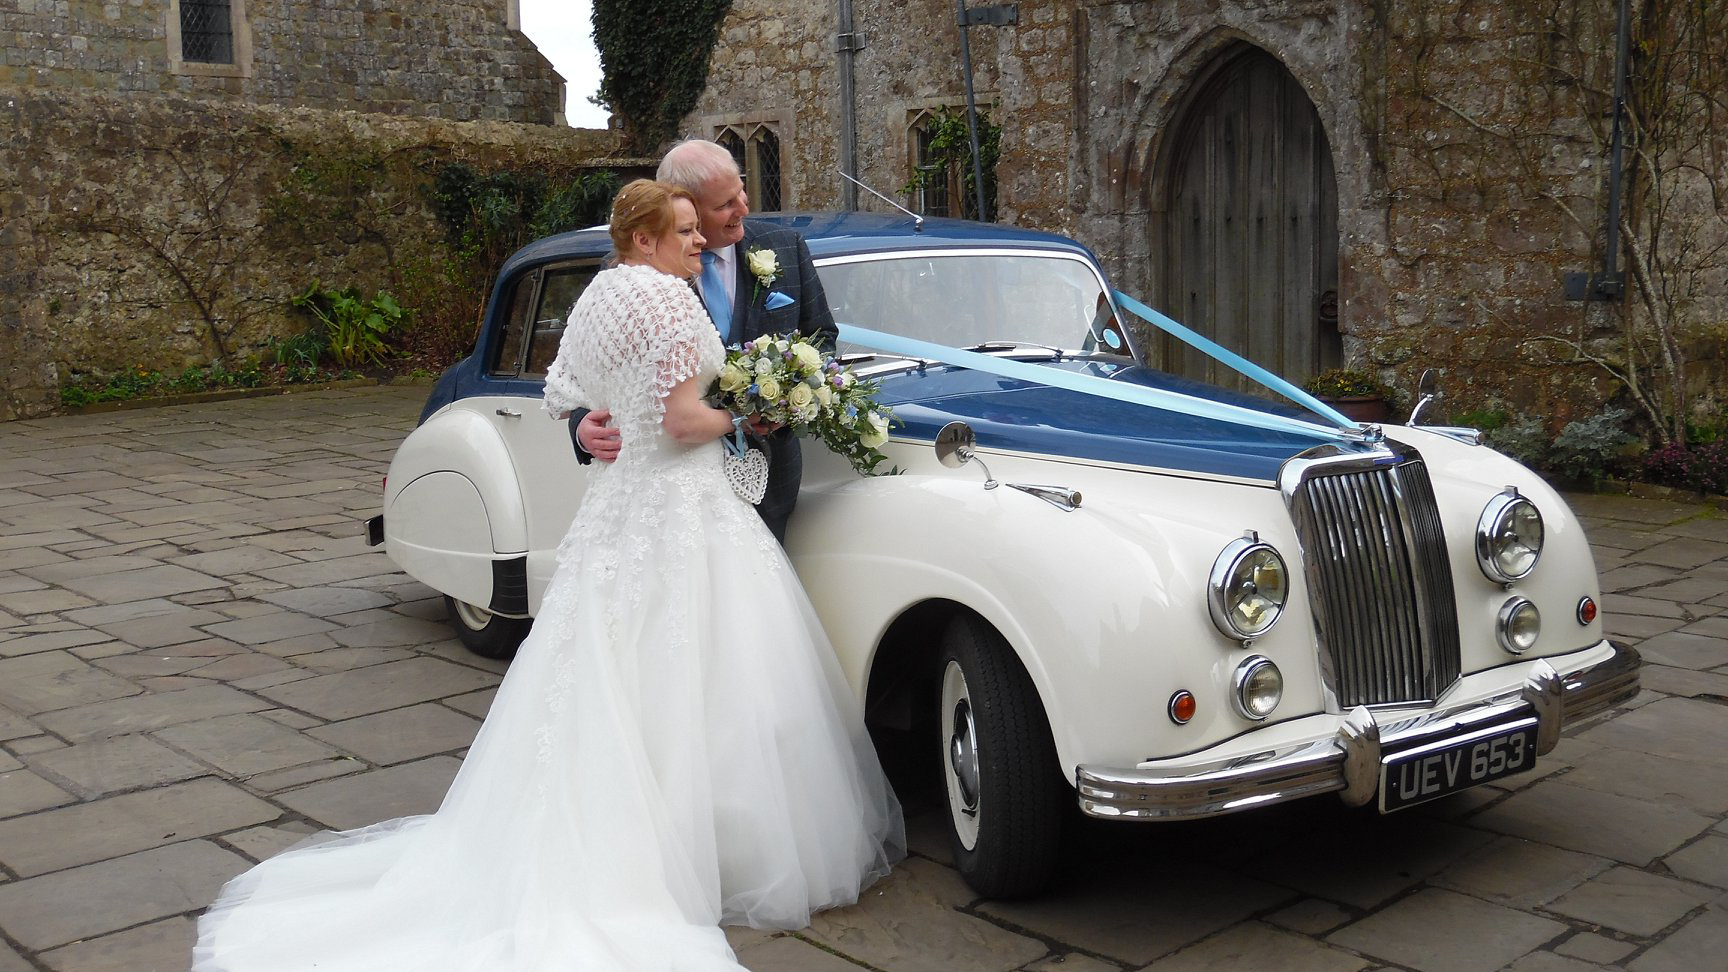 Armstrong-Siddeley Sapphire